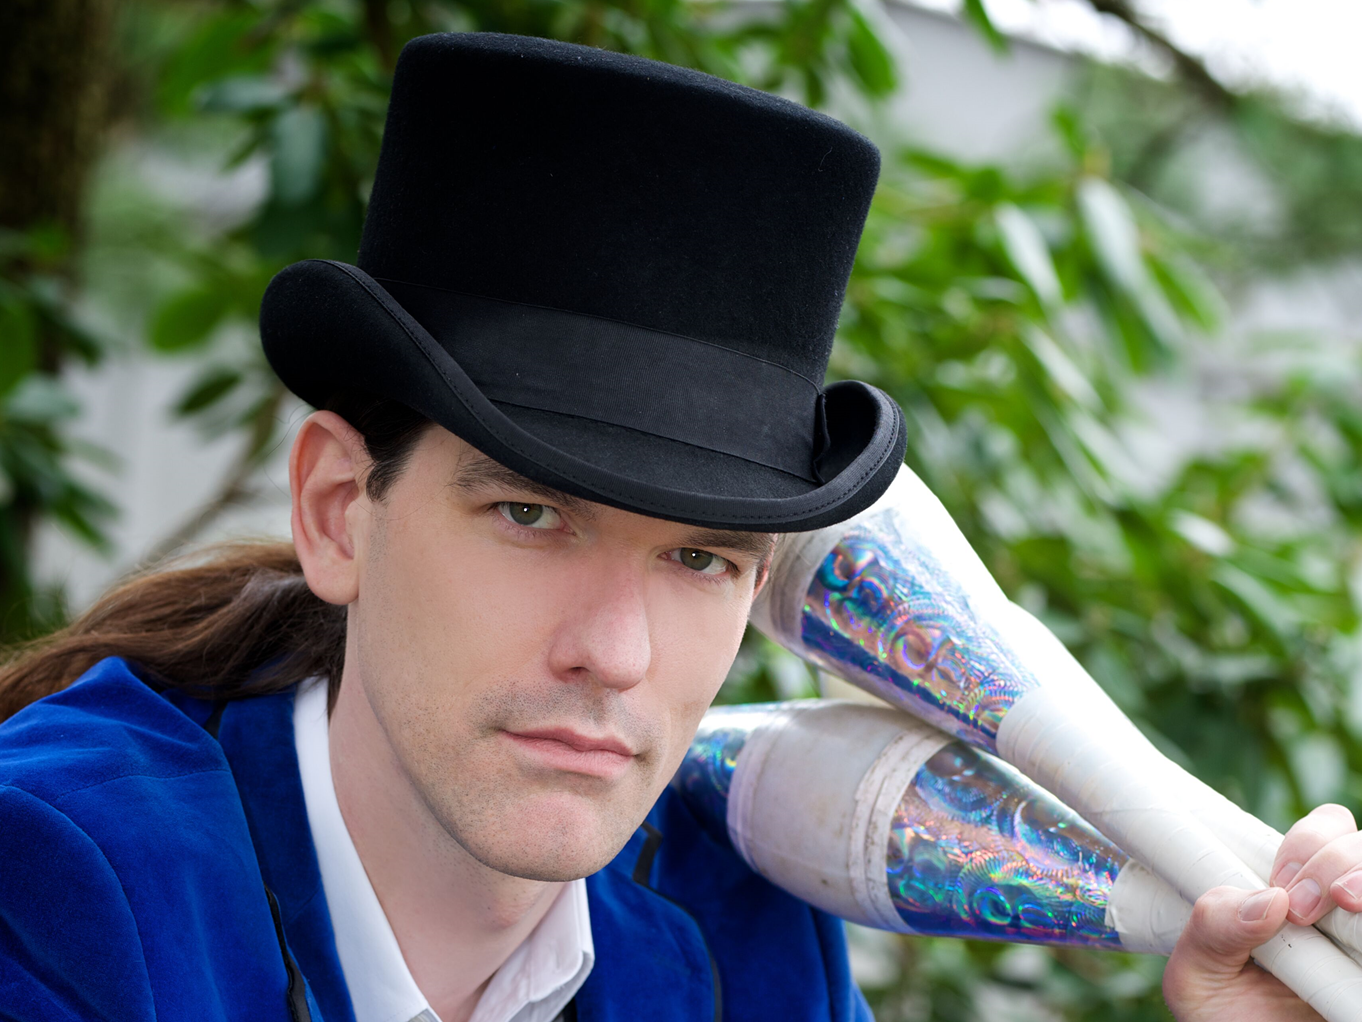 """David Darwin, a contortionist billed as """"the One-Man Sideshow,"""" is among the entertainers who will participate in the 27th annual First Night Morris.  The New Year's Eve celebration takes over venues throughout downtown Morristown on Monday, December 31, starting at 4:45 p.m."""